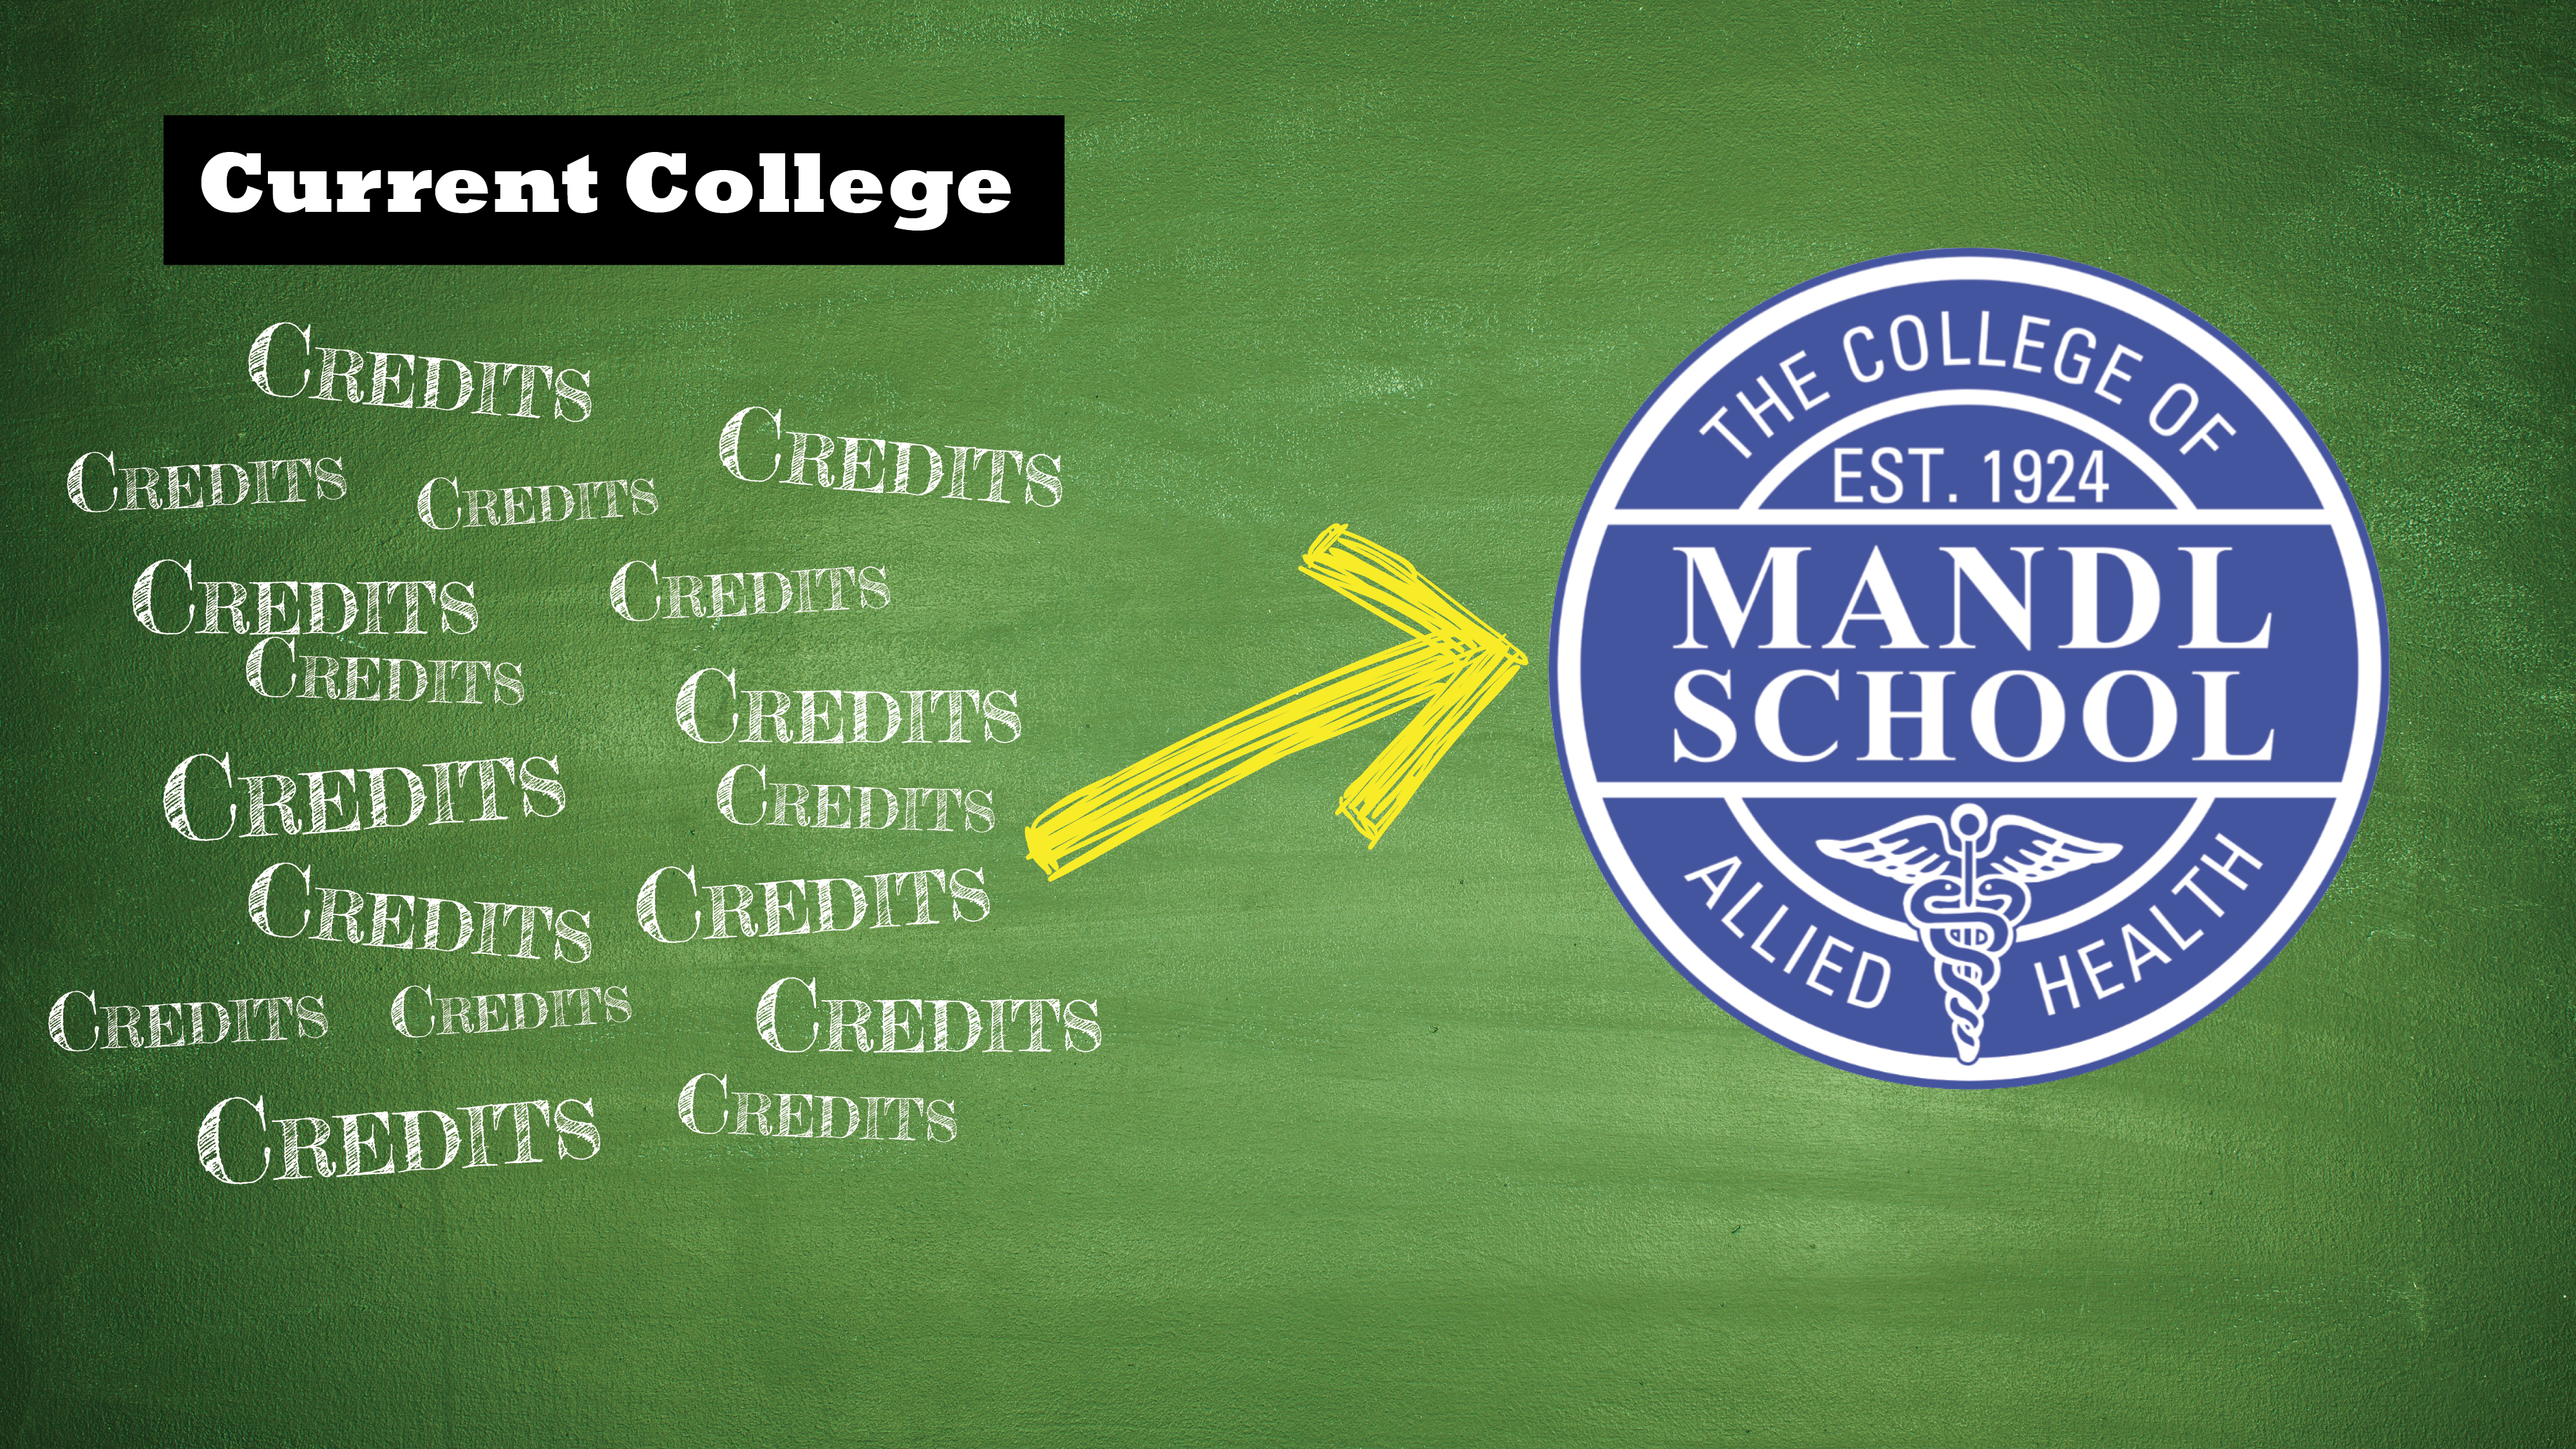 Transfer College credits to Mandl School